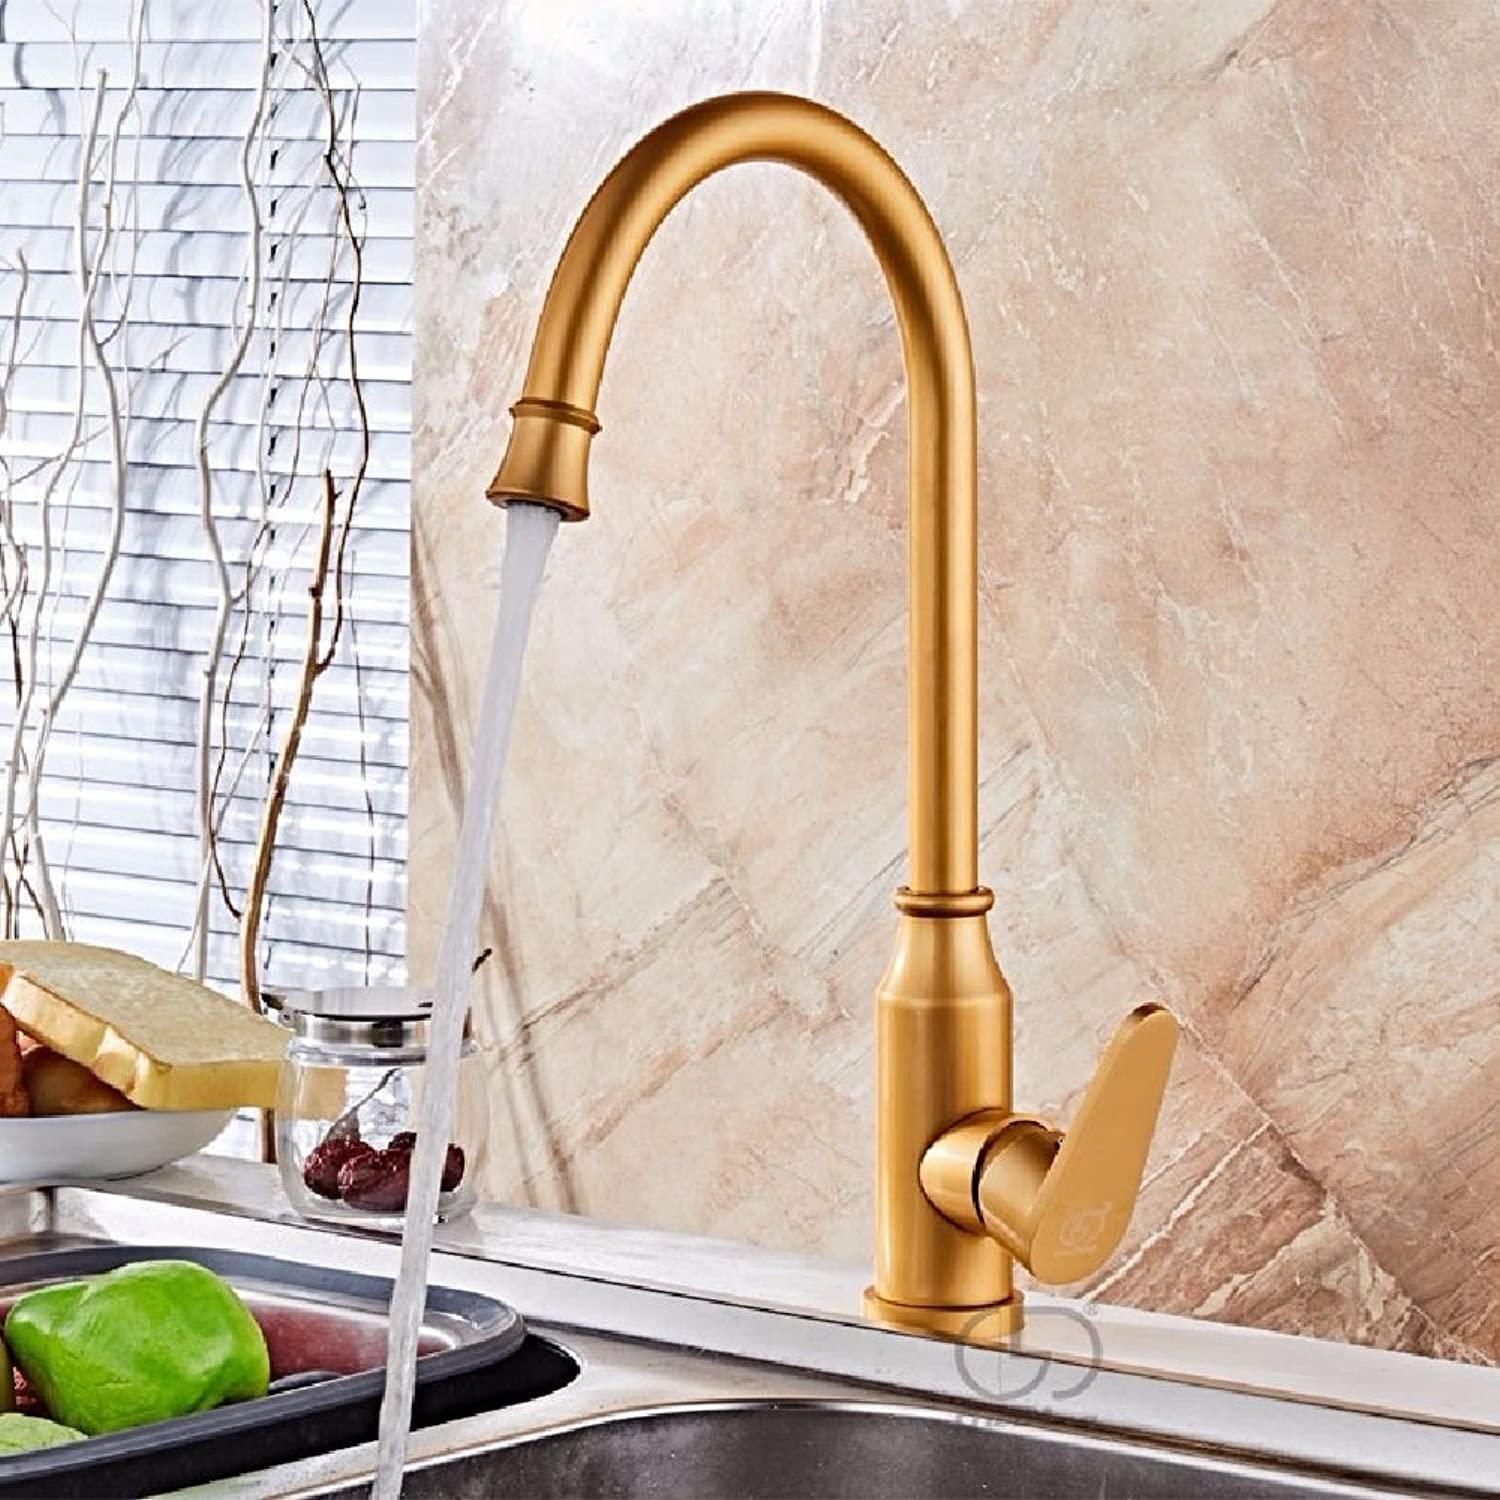 Modern simple copper hot and cold kitchen sink taps kitchen faucet gold redating Hot and Cold Kitchen Faucet Space Aluminum Sink Faucet Suitable for all bathroom kitchen sinks